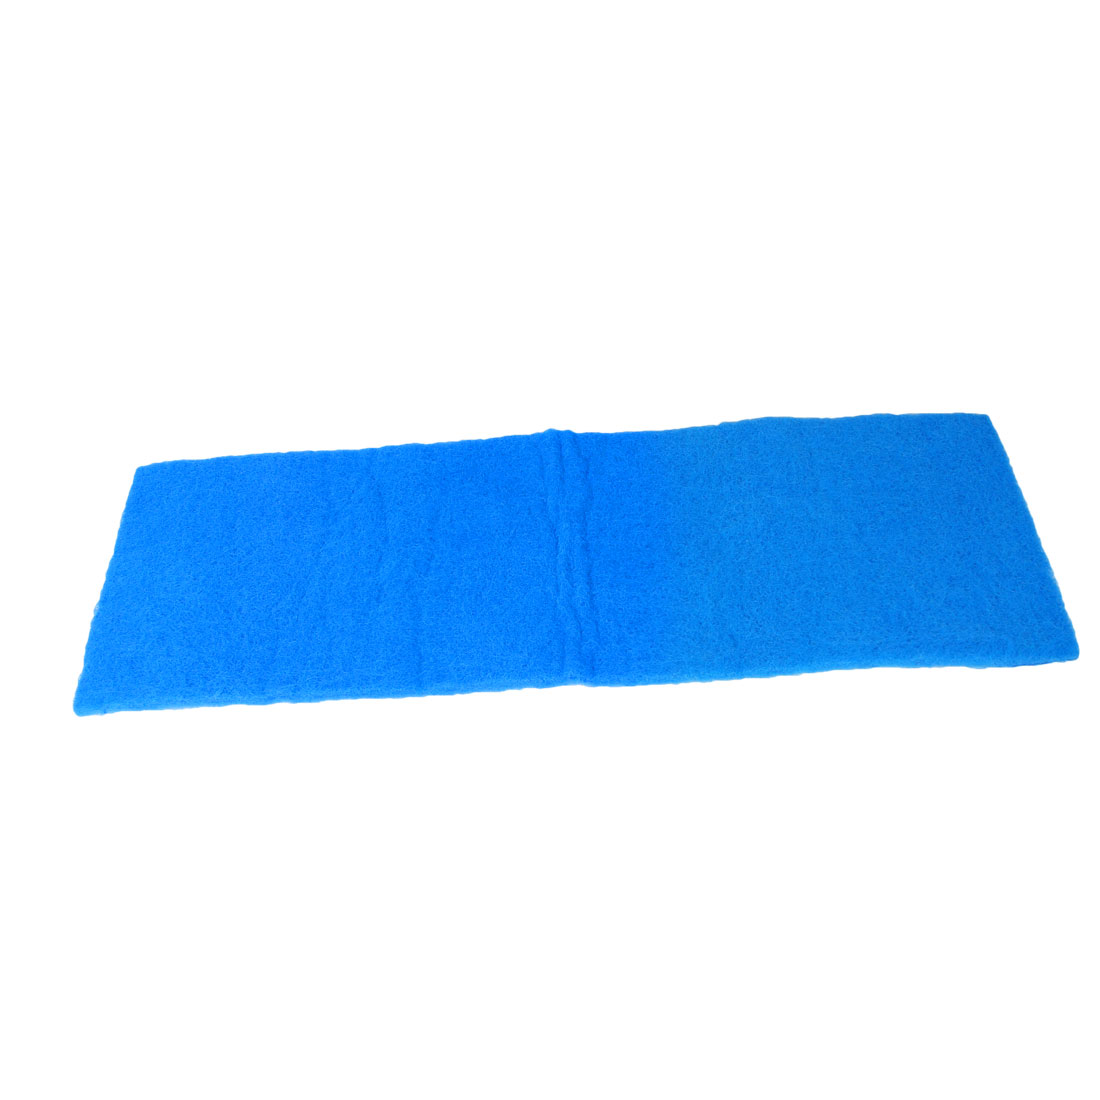 Blue Biochemical Rectangle Shape Sponge Filter for Aquarium Fish Tank